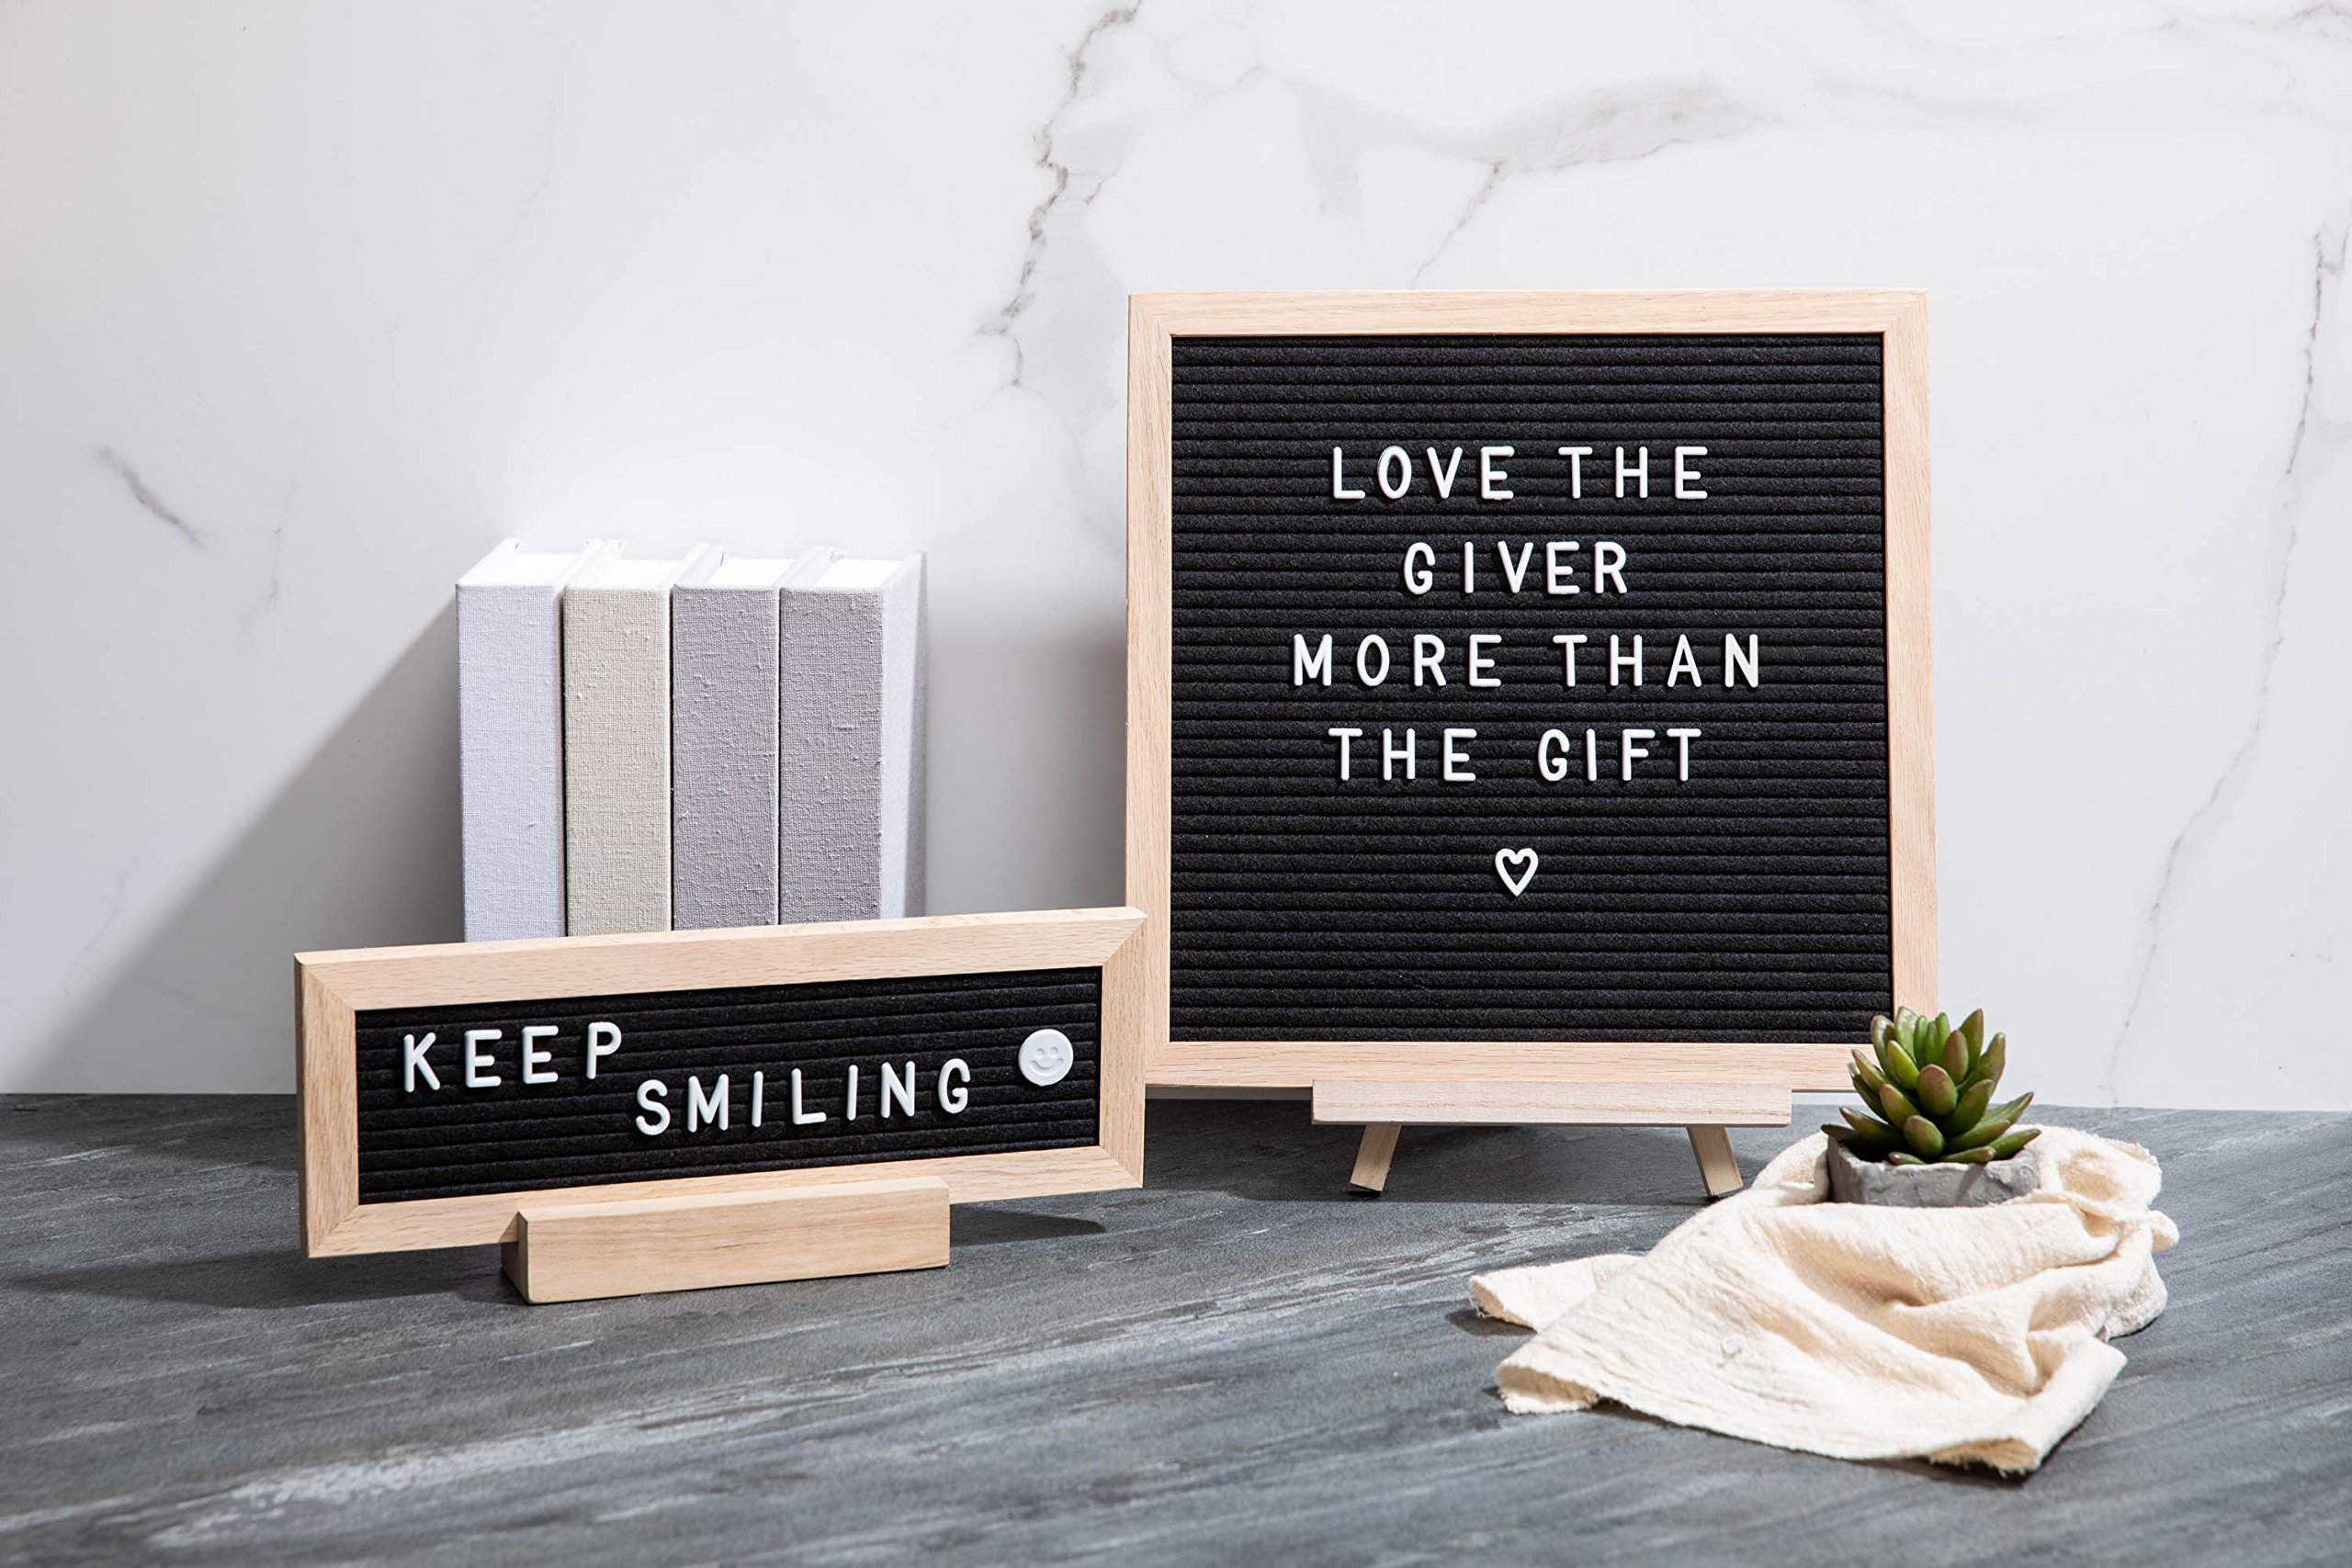 """ETHONS Felt Letter Board Super Pack - 2 Quality Letter Boards 12""""x12"""" & 12""""x4"""" - Personalize with 640 Characters in White & Gold - Gift-Ready Display Boards - Includes 2 Wood Stands and 2 Canvas Bags by ETHONS (Image #5)"""